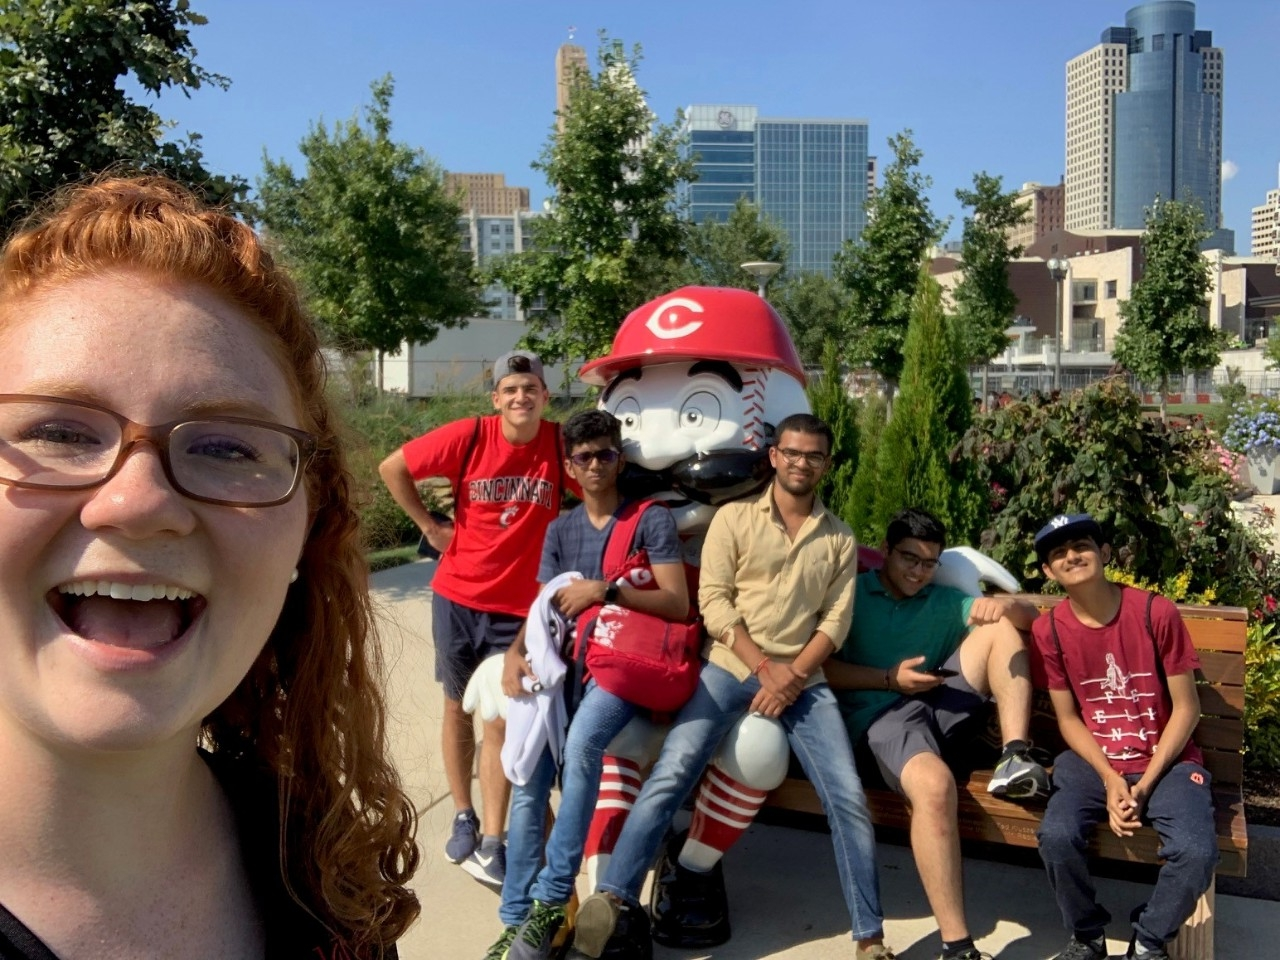 Students pose for a selfie with Mr Red statue